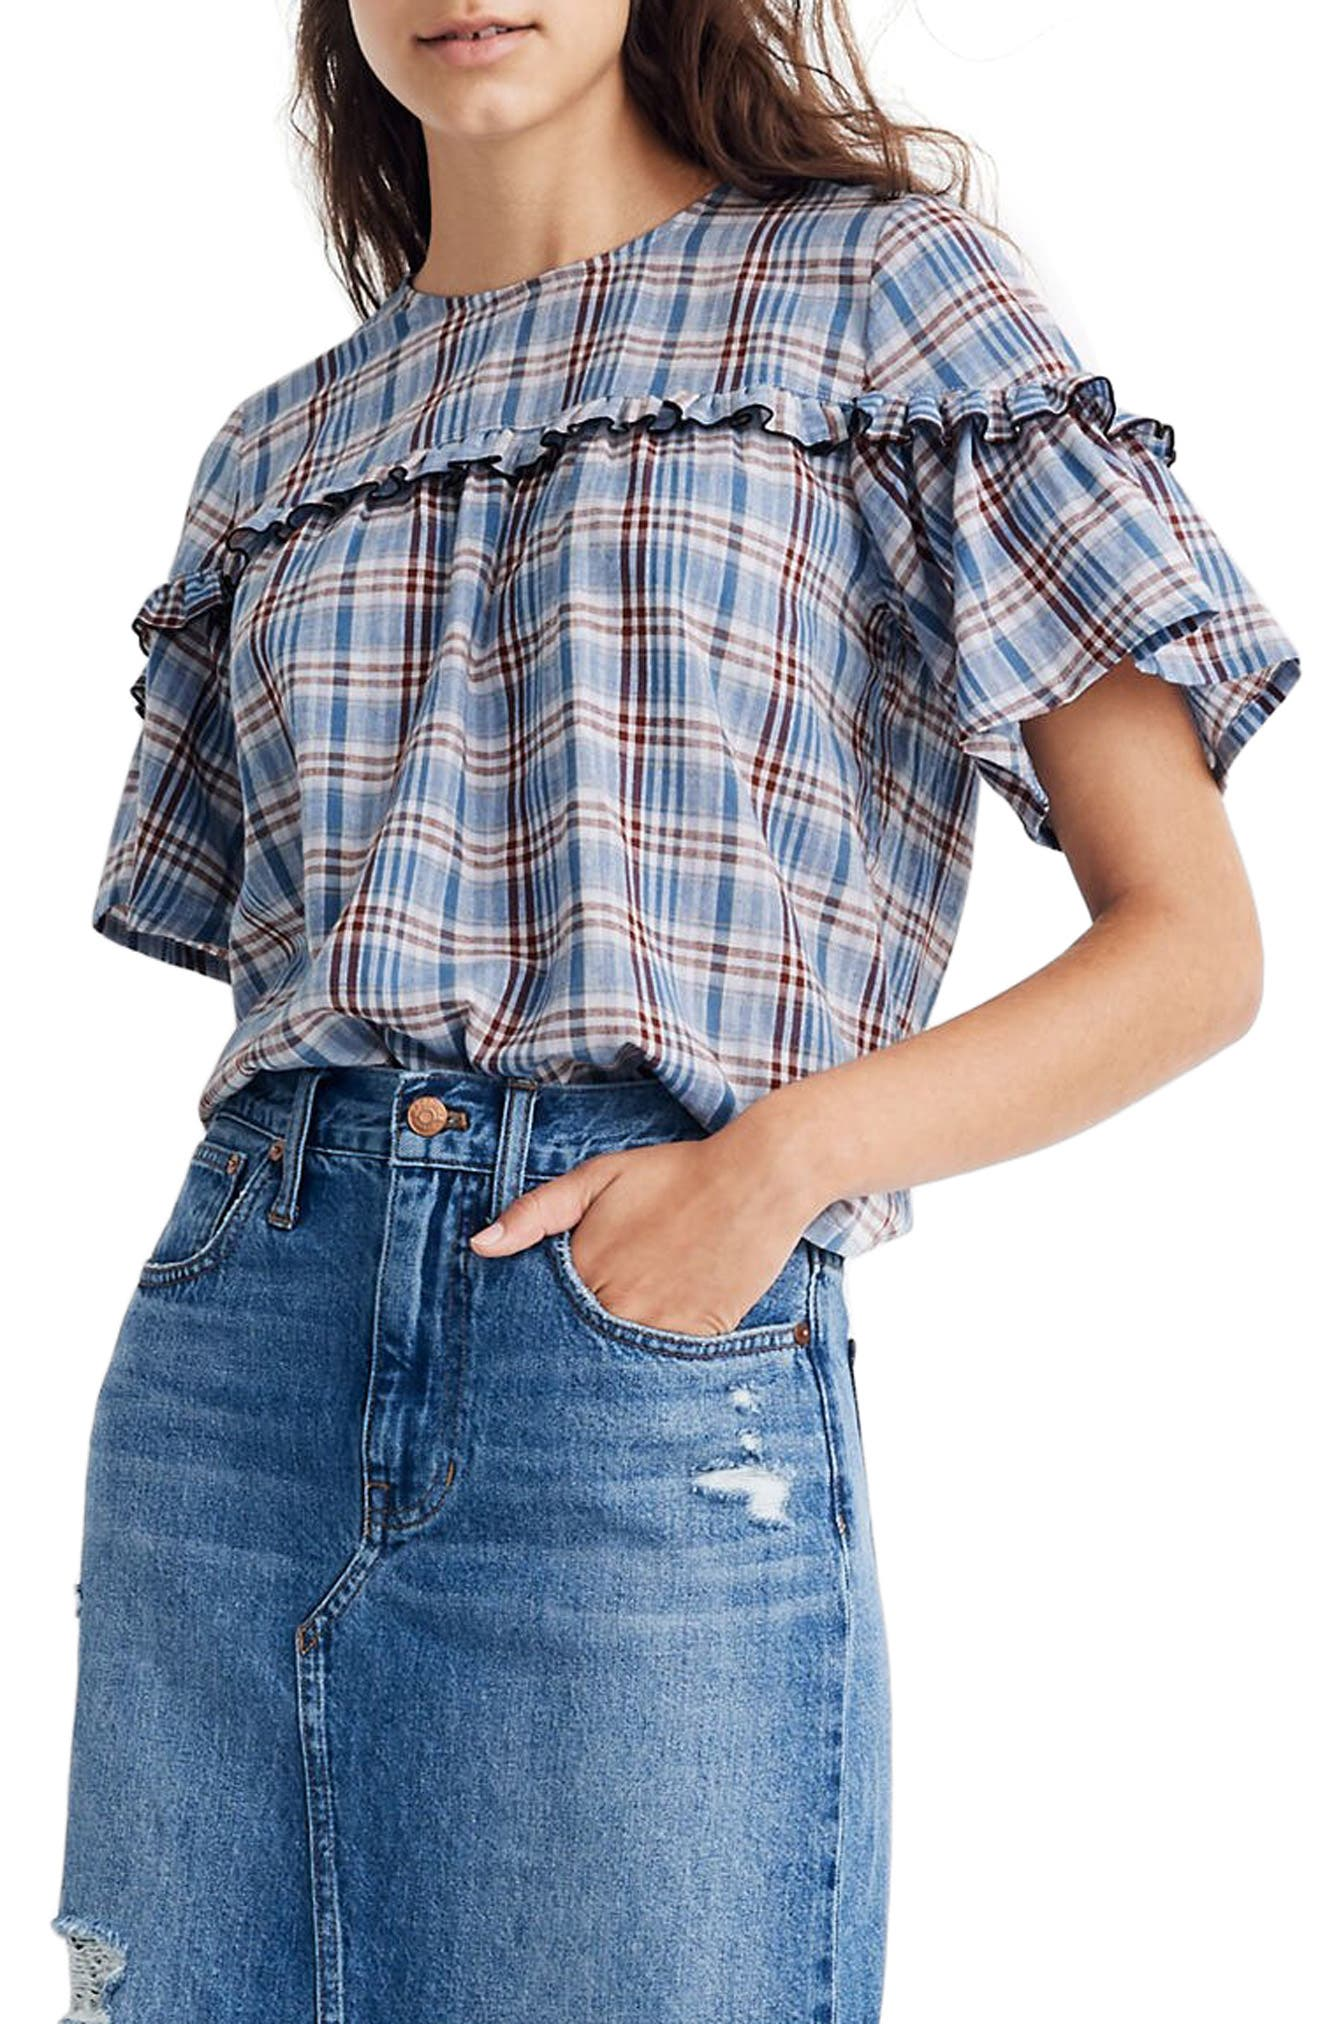 1930s Clothing Womens Madewell Ruffle Yoke Top In Plaid $72.00 AT vintagedancer.com